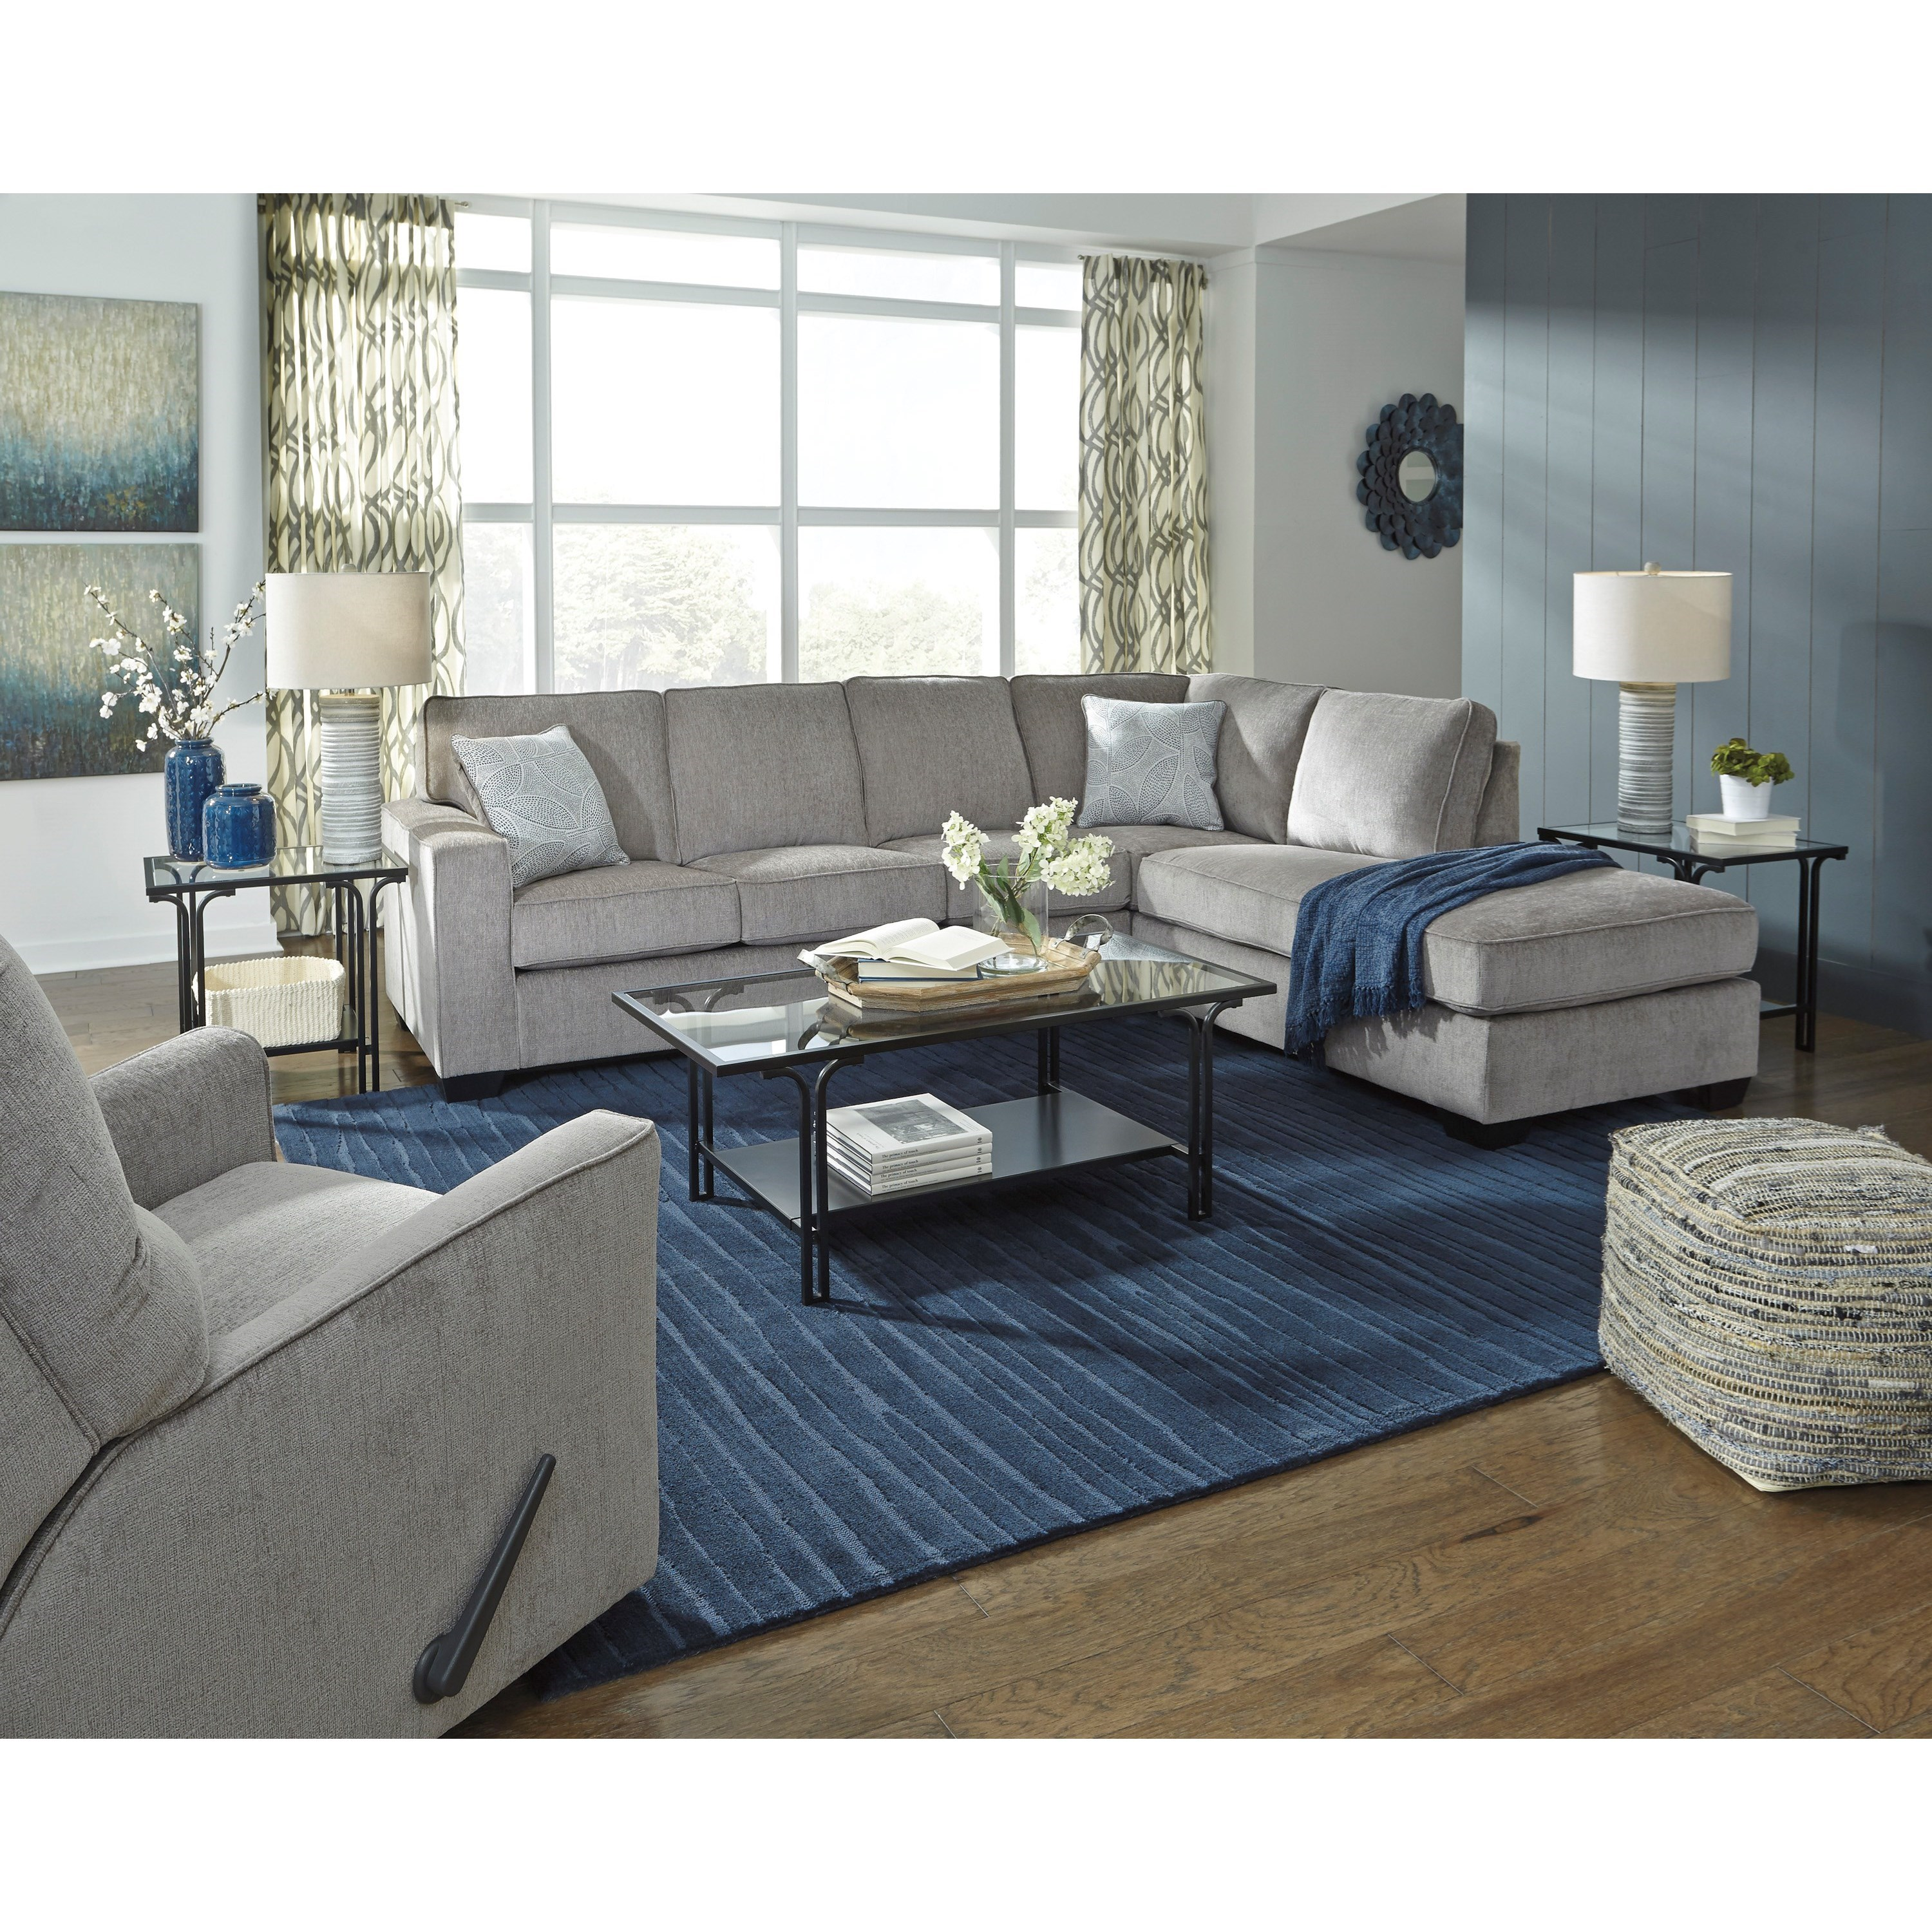 Altari Living Room Group by Signature Design by Ashley at Pilgrim Furniture City